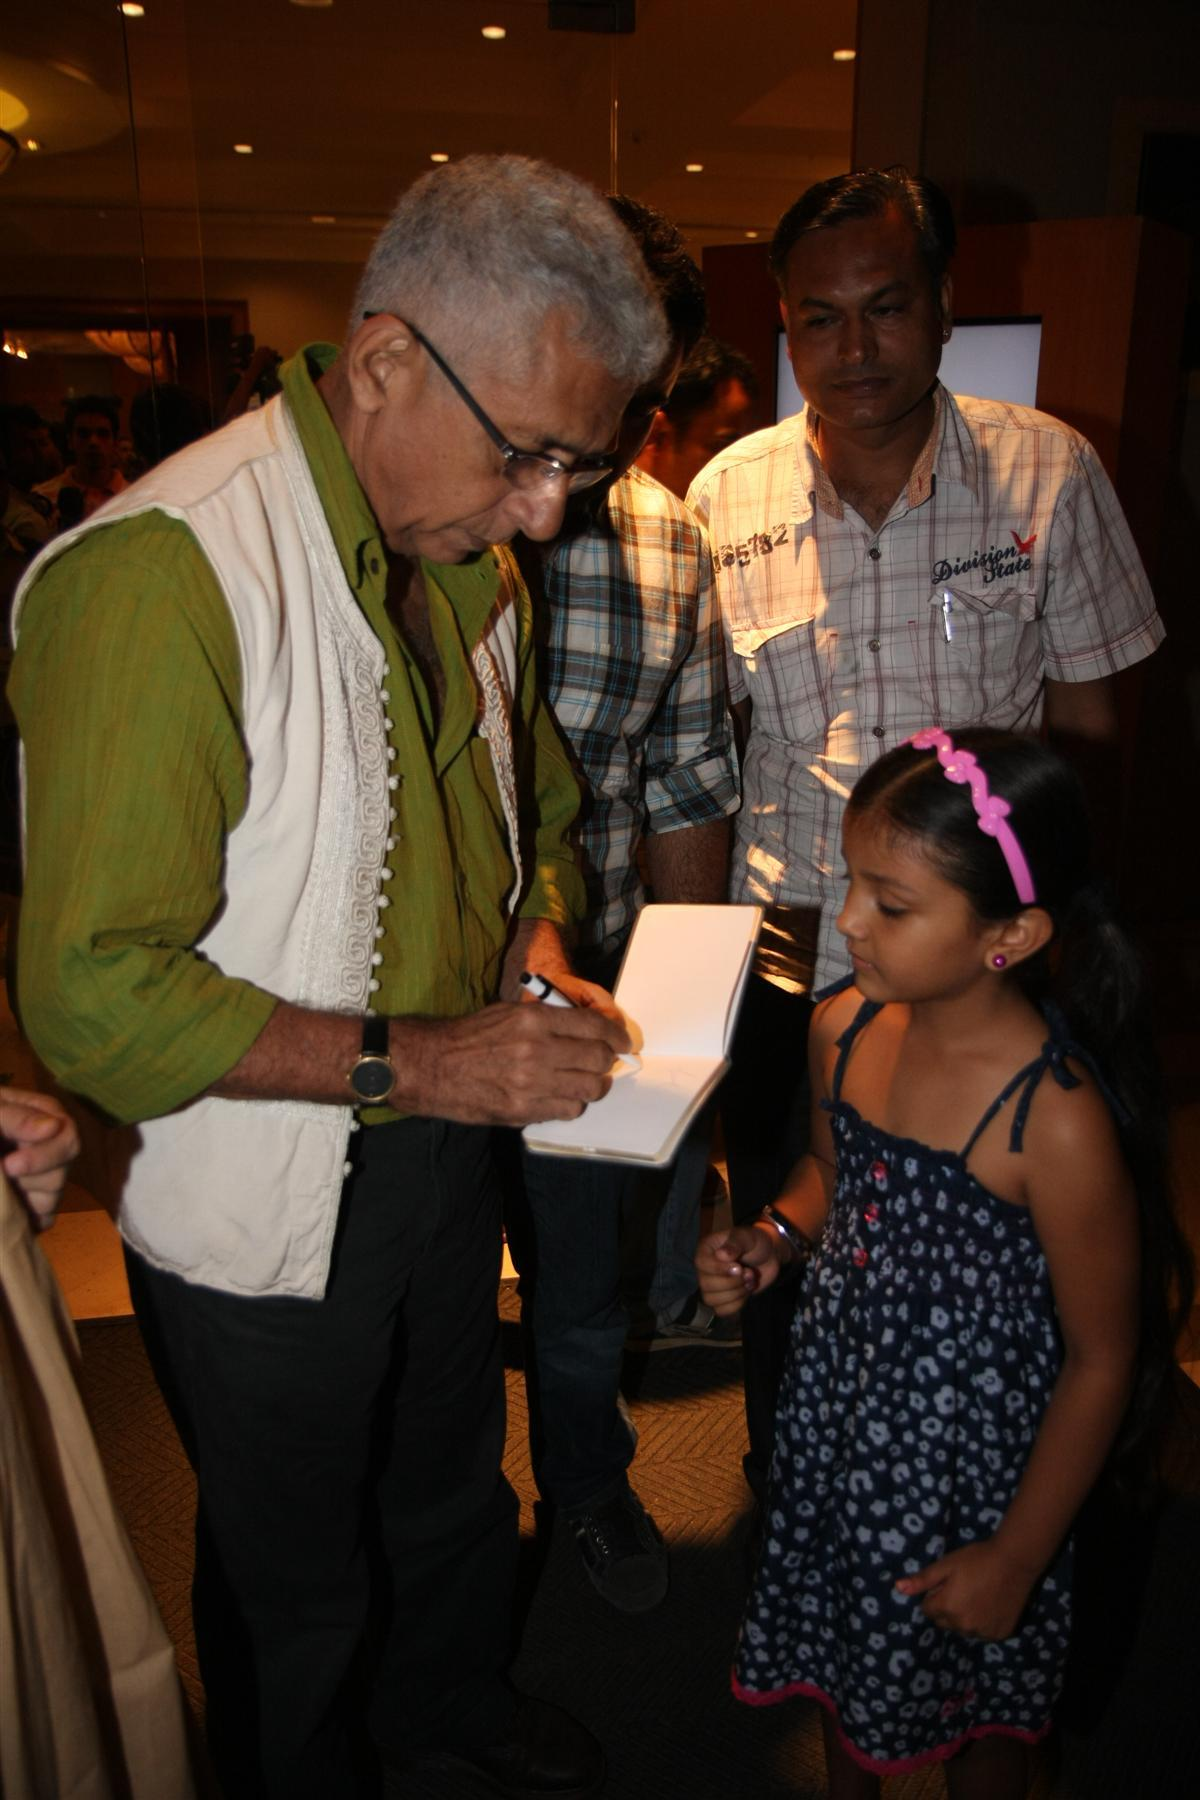 Naseeruddin Shah signing an autograph for a little girl